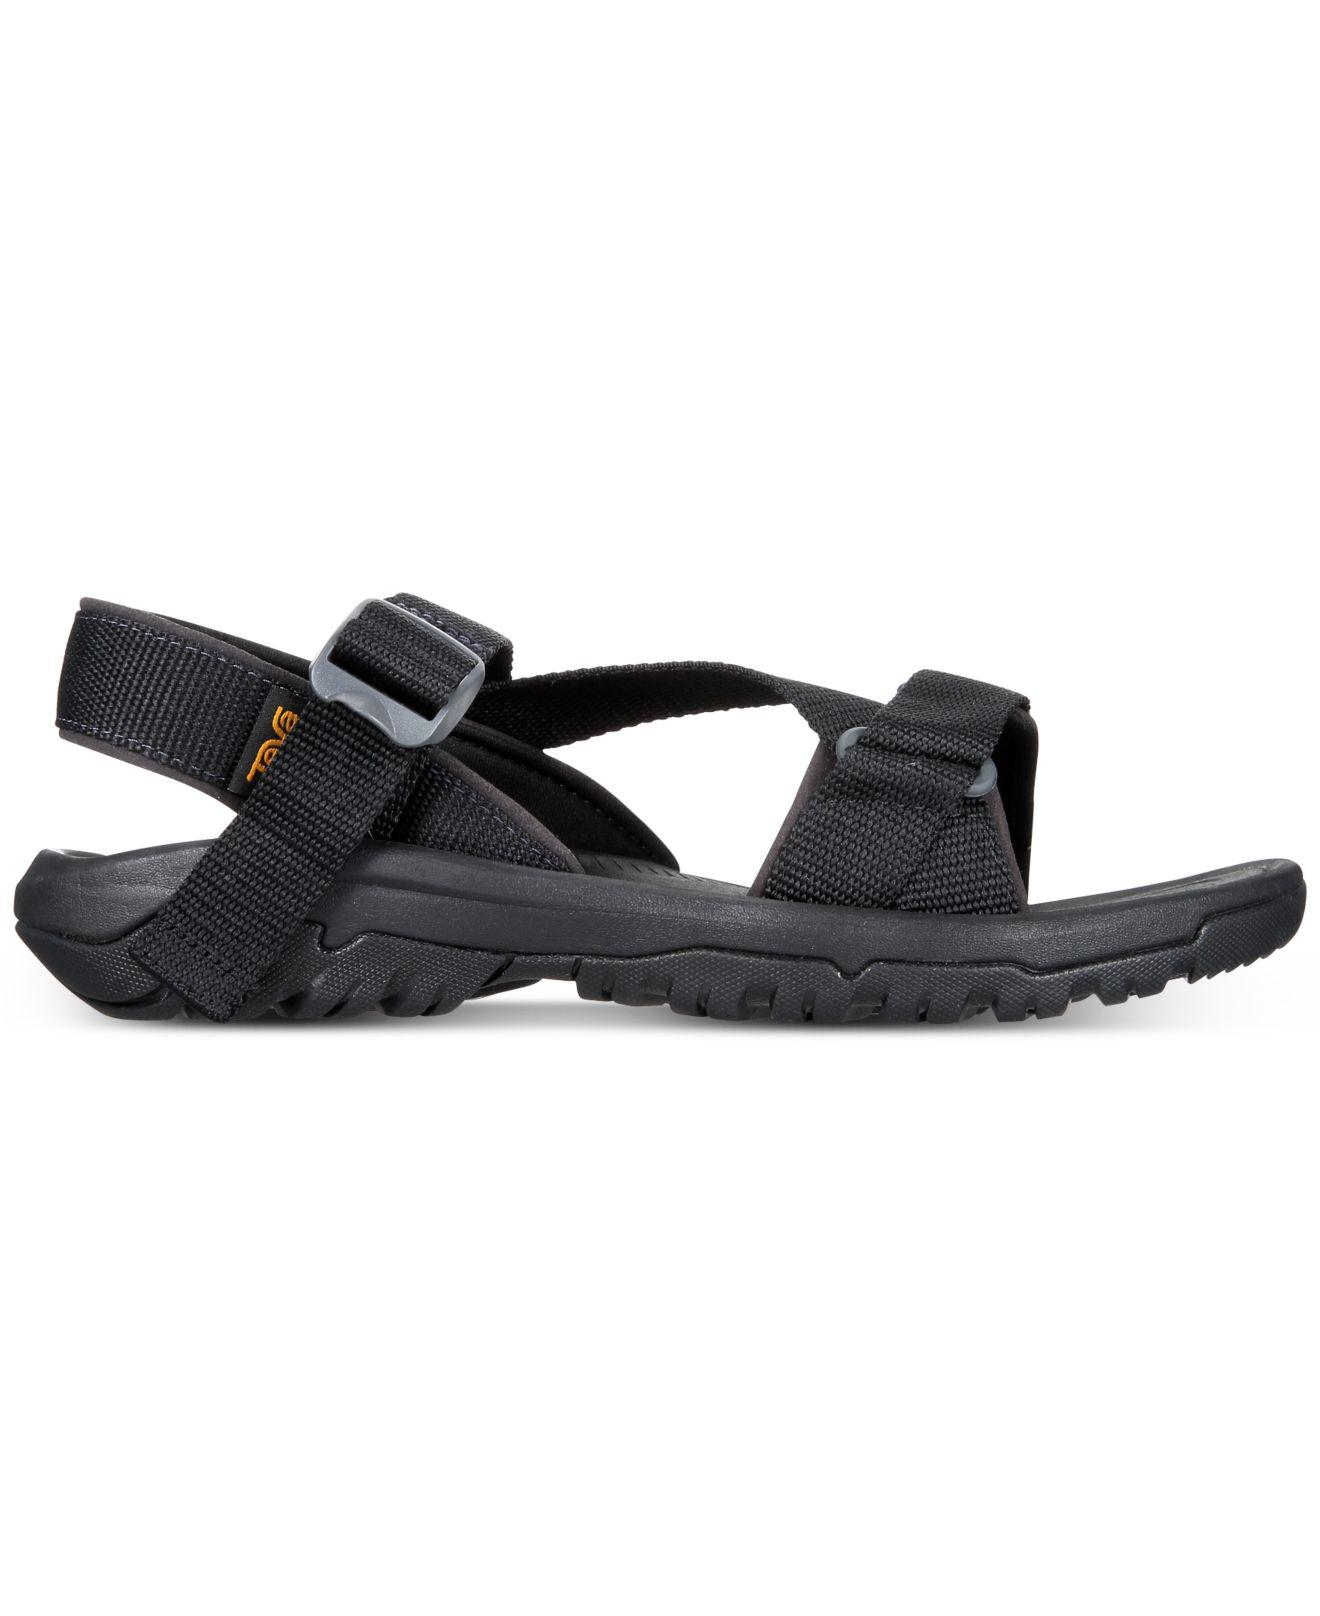 0020169e4888 Lyst - Teva Hurricane Xlt2 Cross-strap Water-resistant Sandals in Black